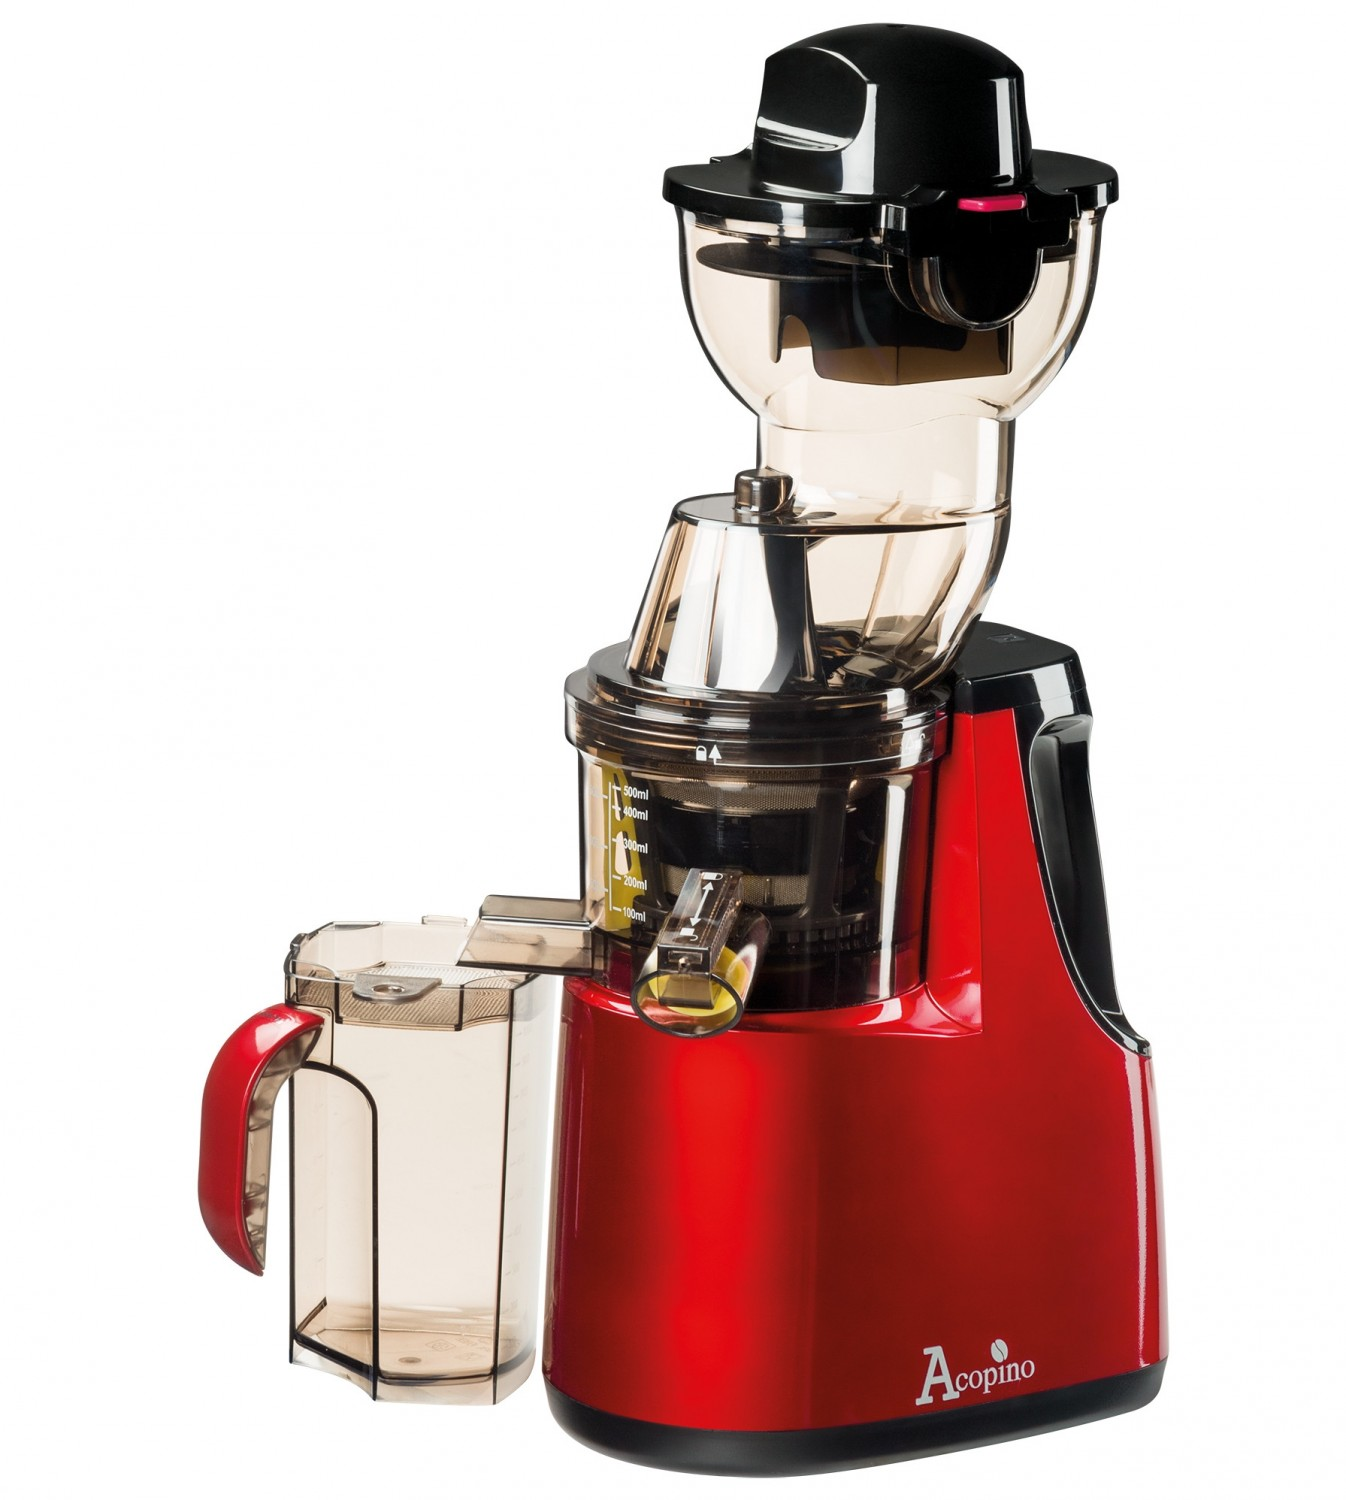 Test Entsafter - Acopino Slow Juicer Delicato